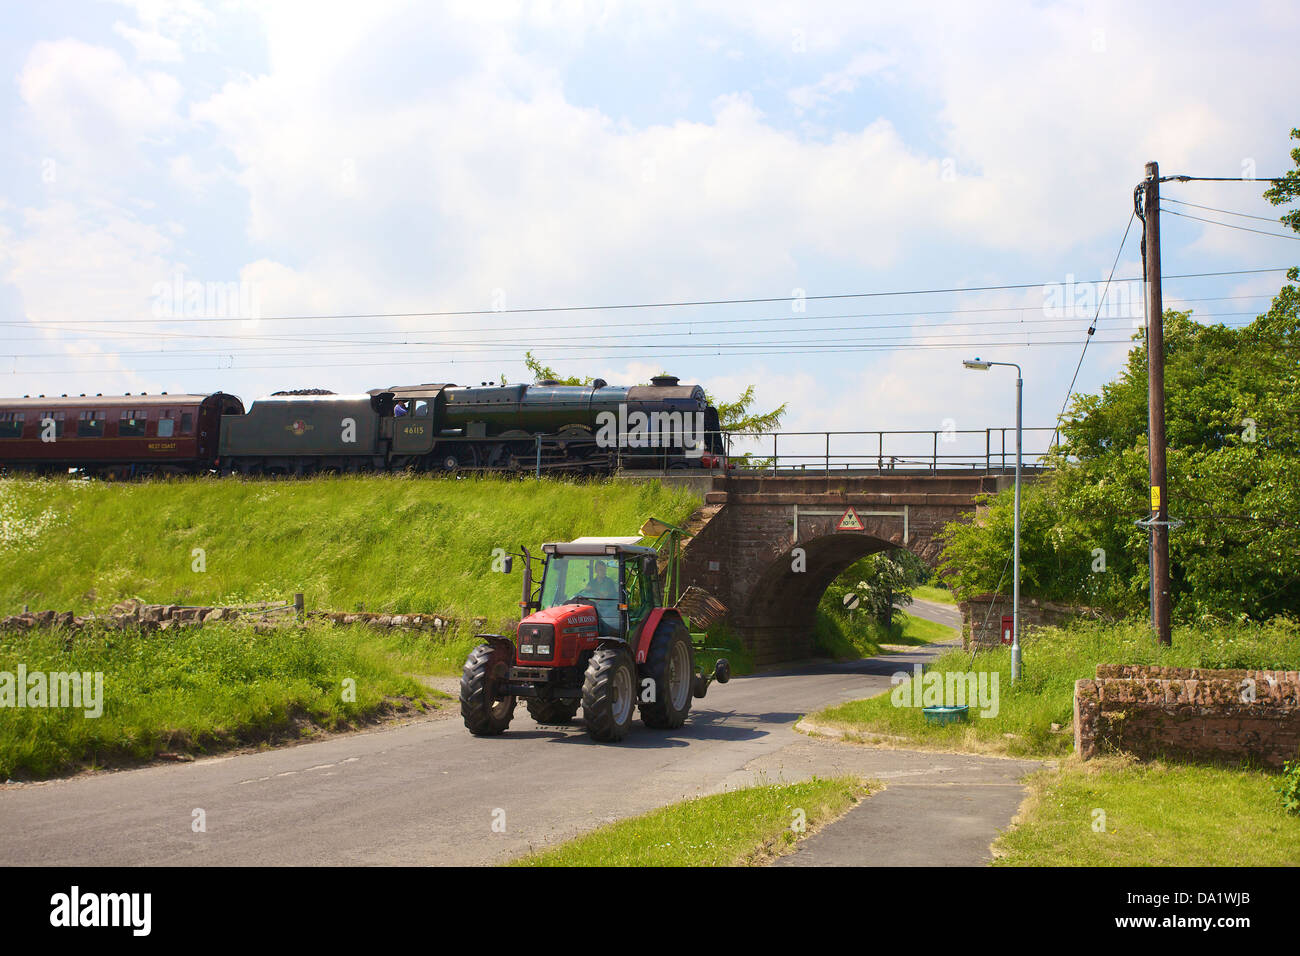 LMS Royal Scot Class 6115 Scots Guardsman steam train at Plumpton on the West Coast Main Line Railway with tractor. - Stock Image